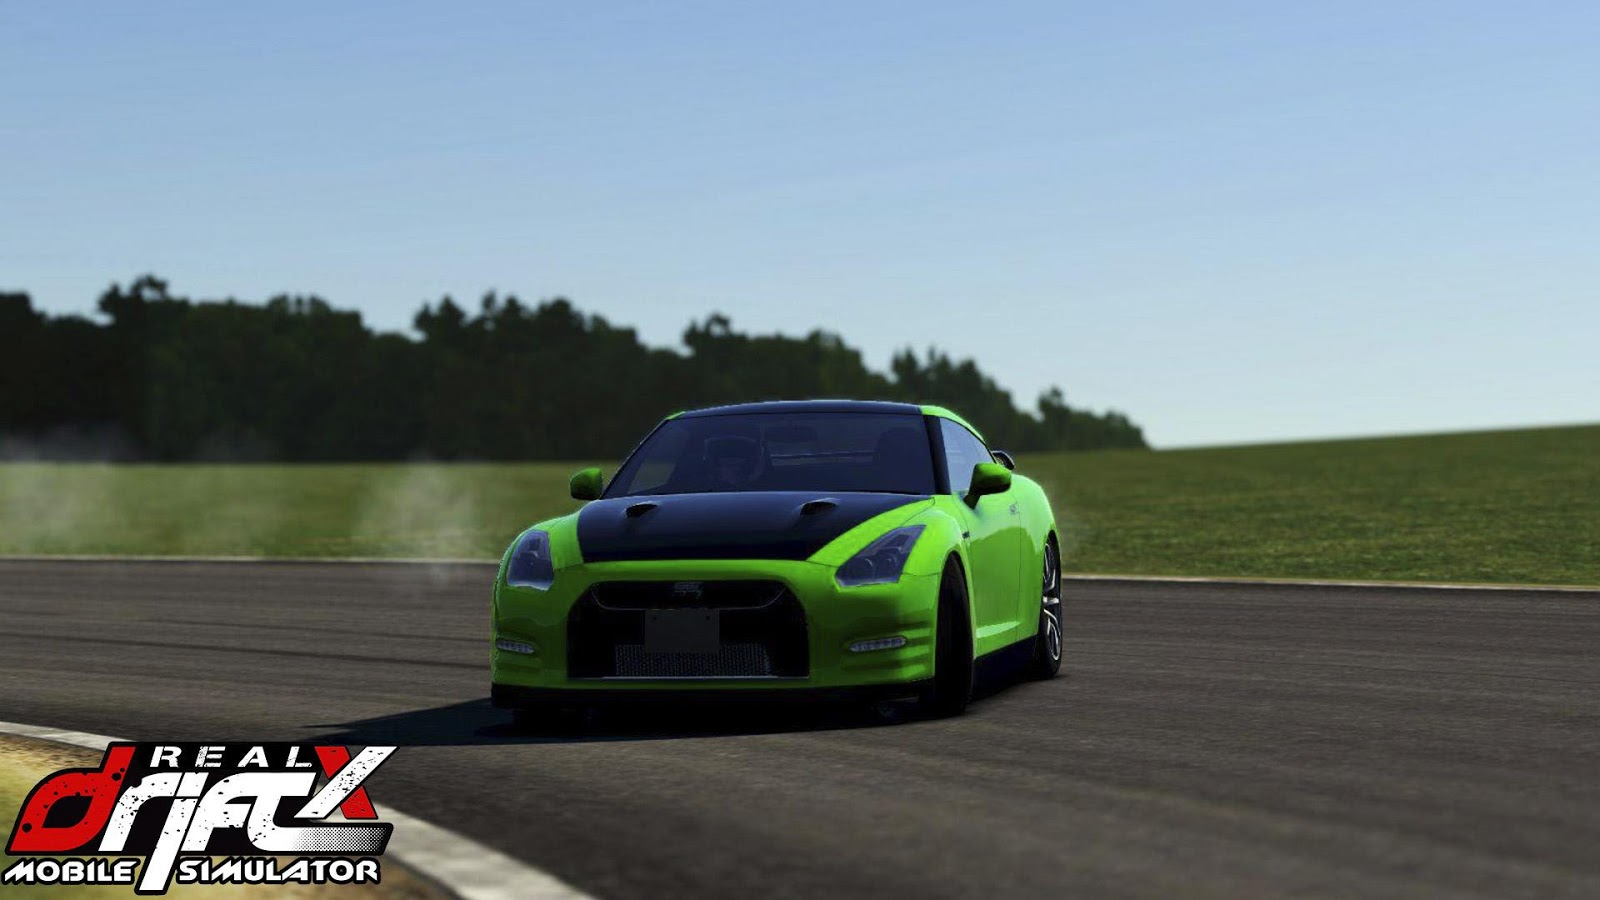 Real Drift X Car Racing Screenshot 8